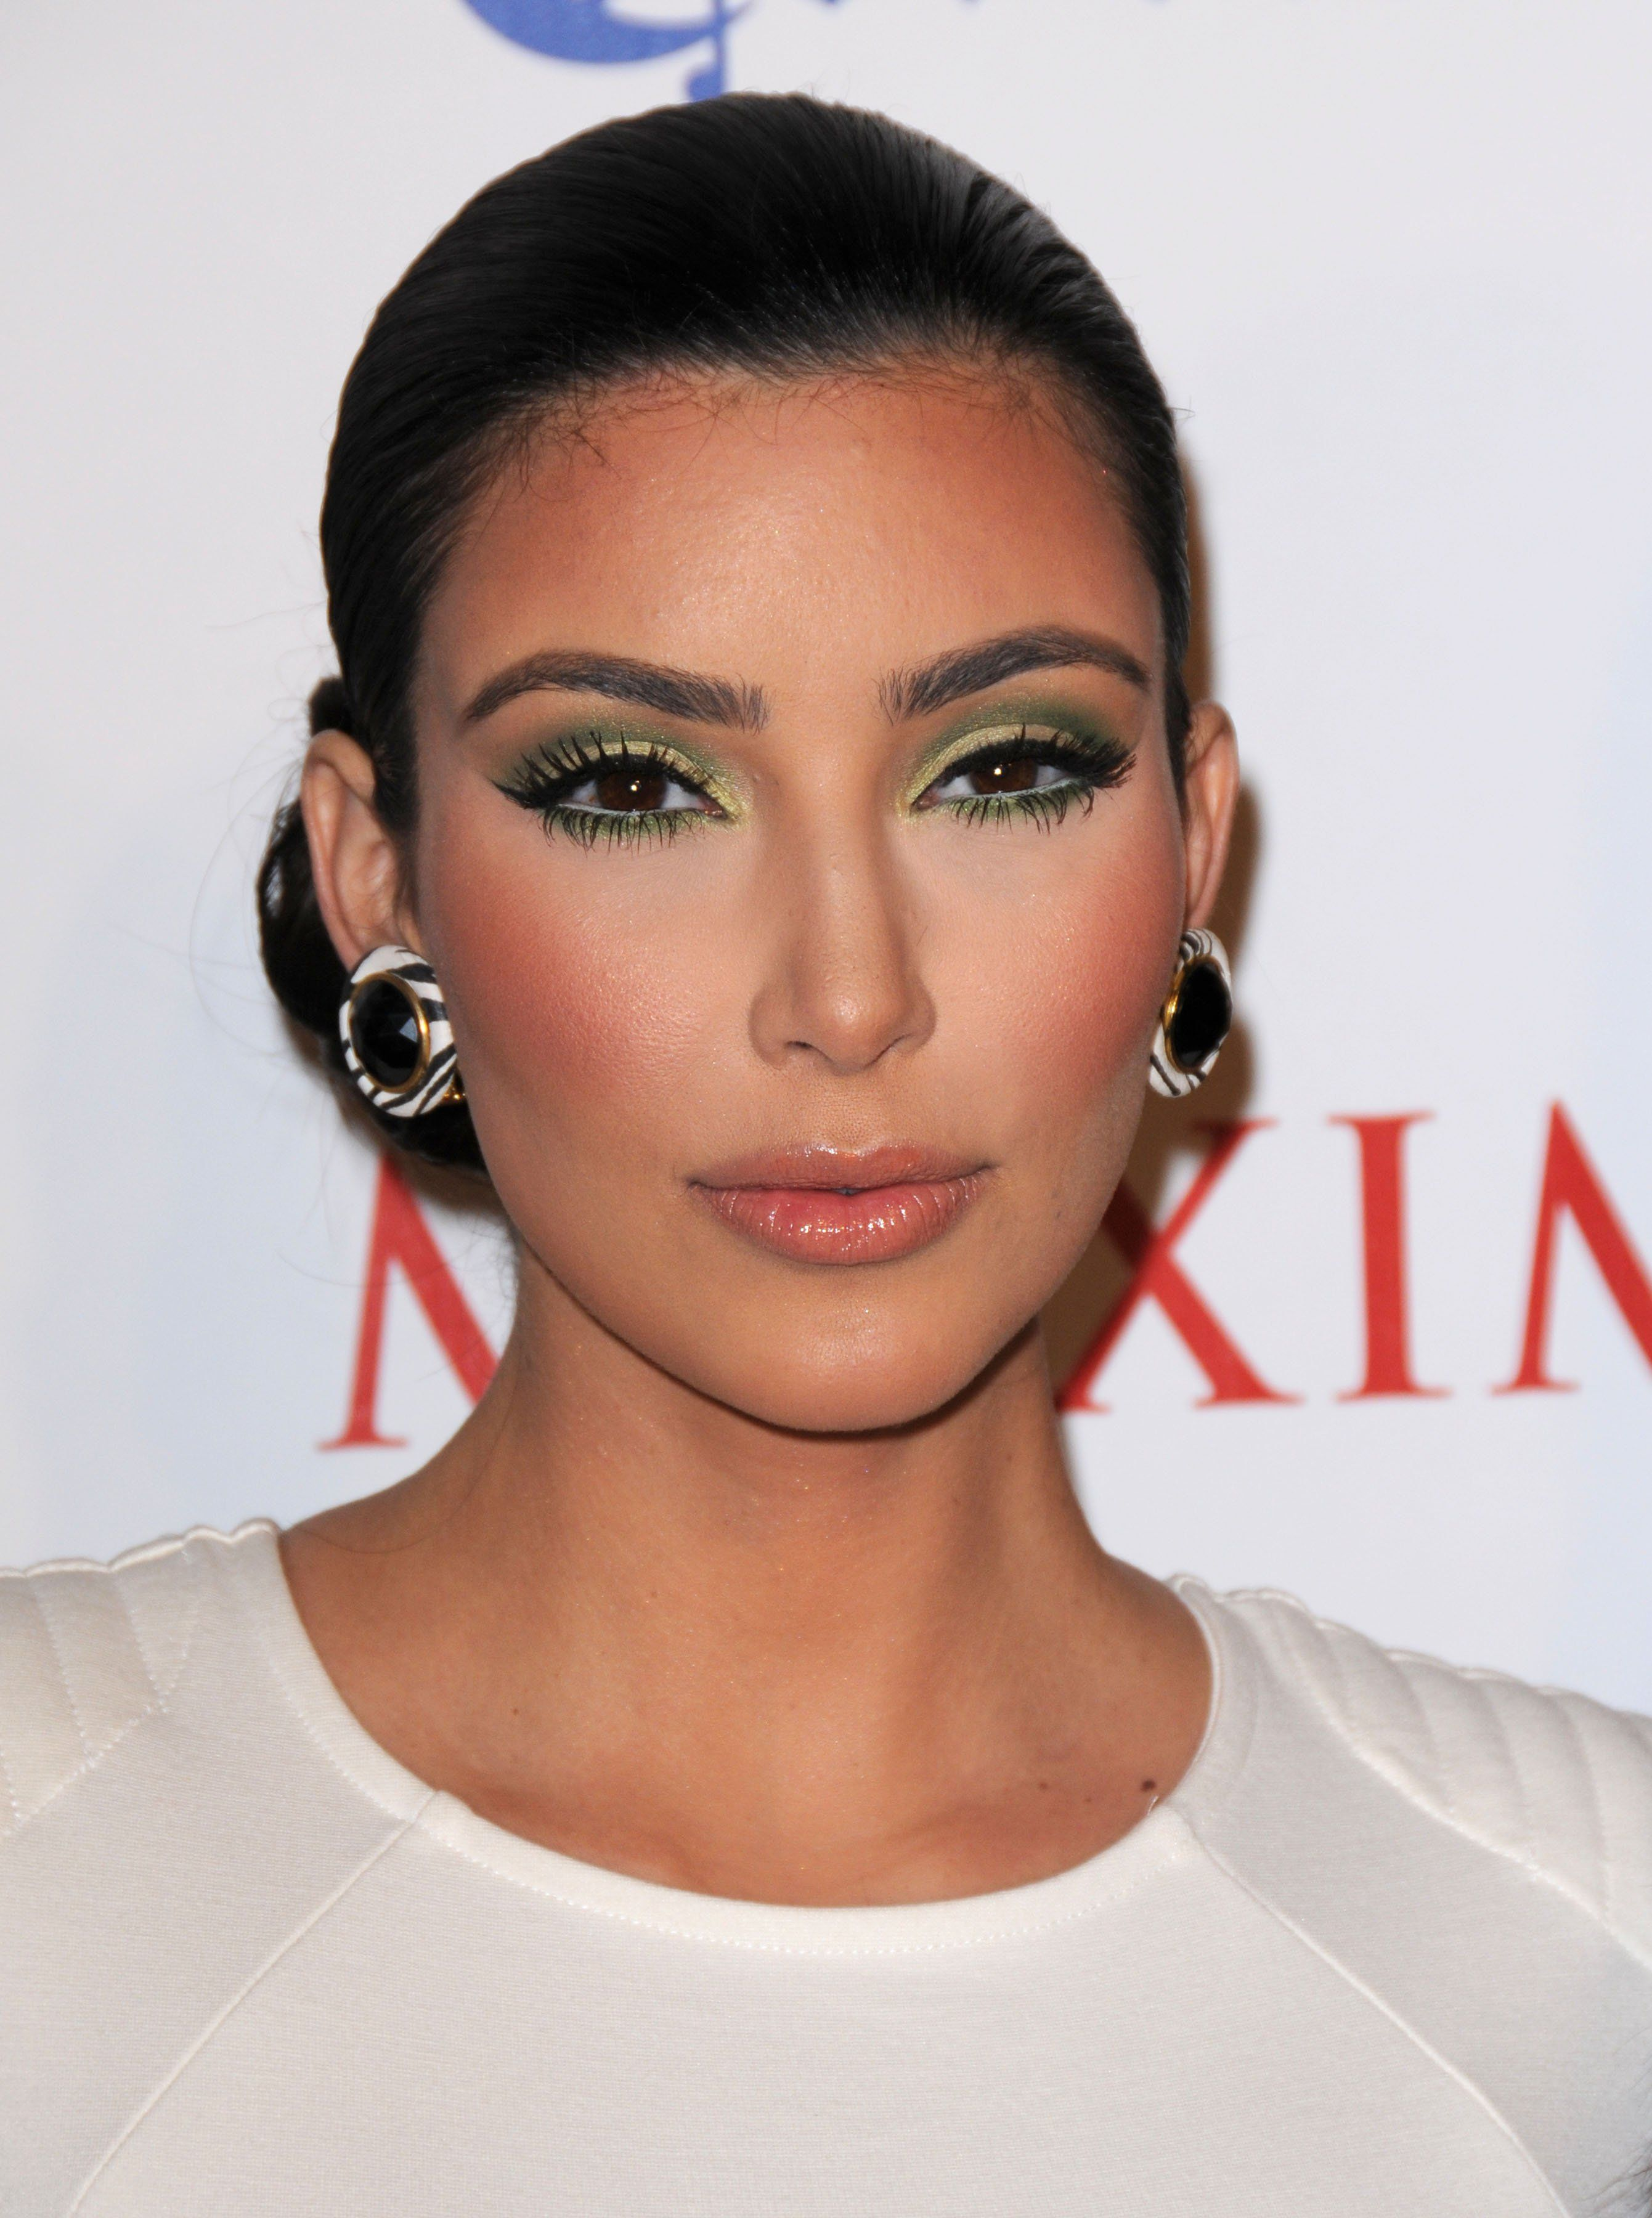 Kim Kardashian's Beauty Routine: Four Eyeliners, Ombre Brows And Sleeping In Make-Up